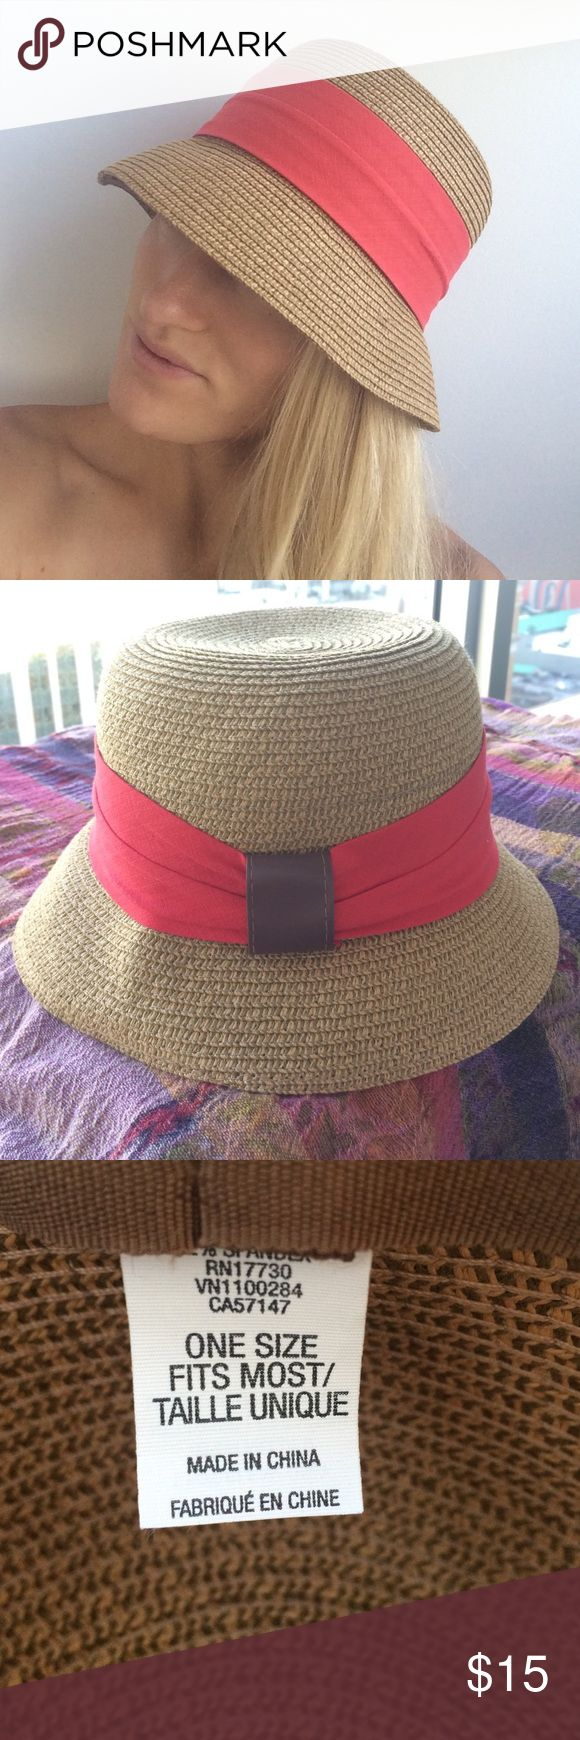 Women's sun hat Short brimmed beach or brunch ready sun hat. Wore it only twice. Accessories Hats